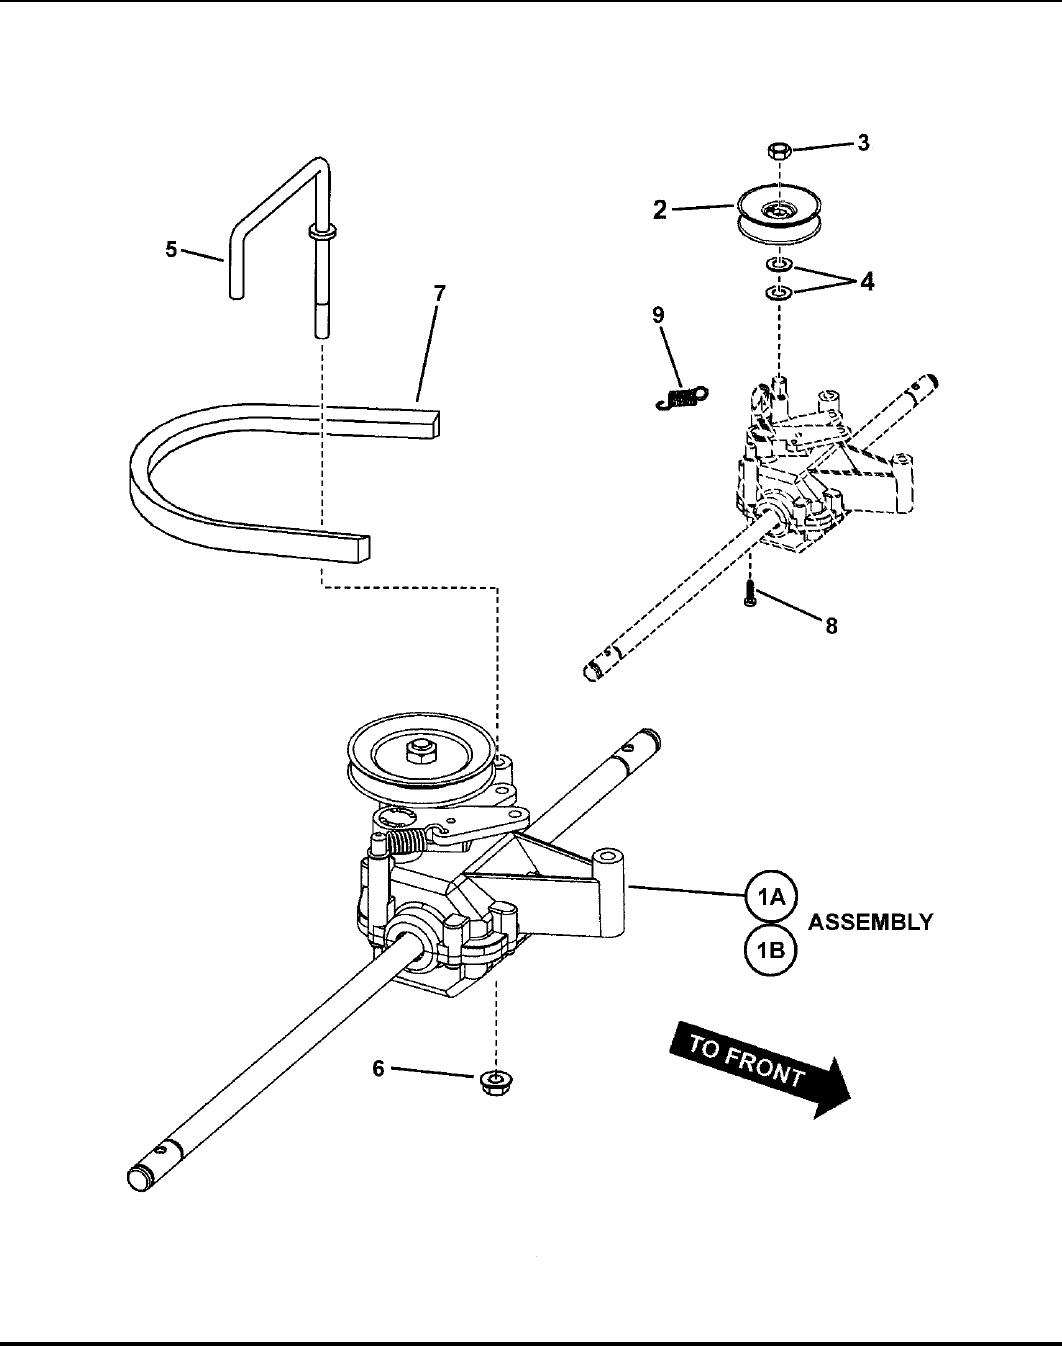 Page 18 of Snapper Lawn Mower SPV21 (7800005) User Guide